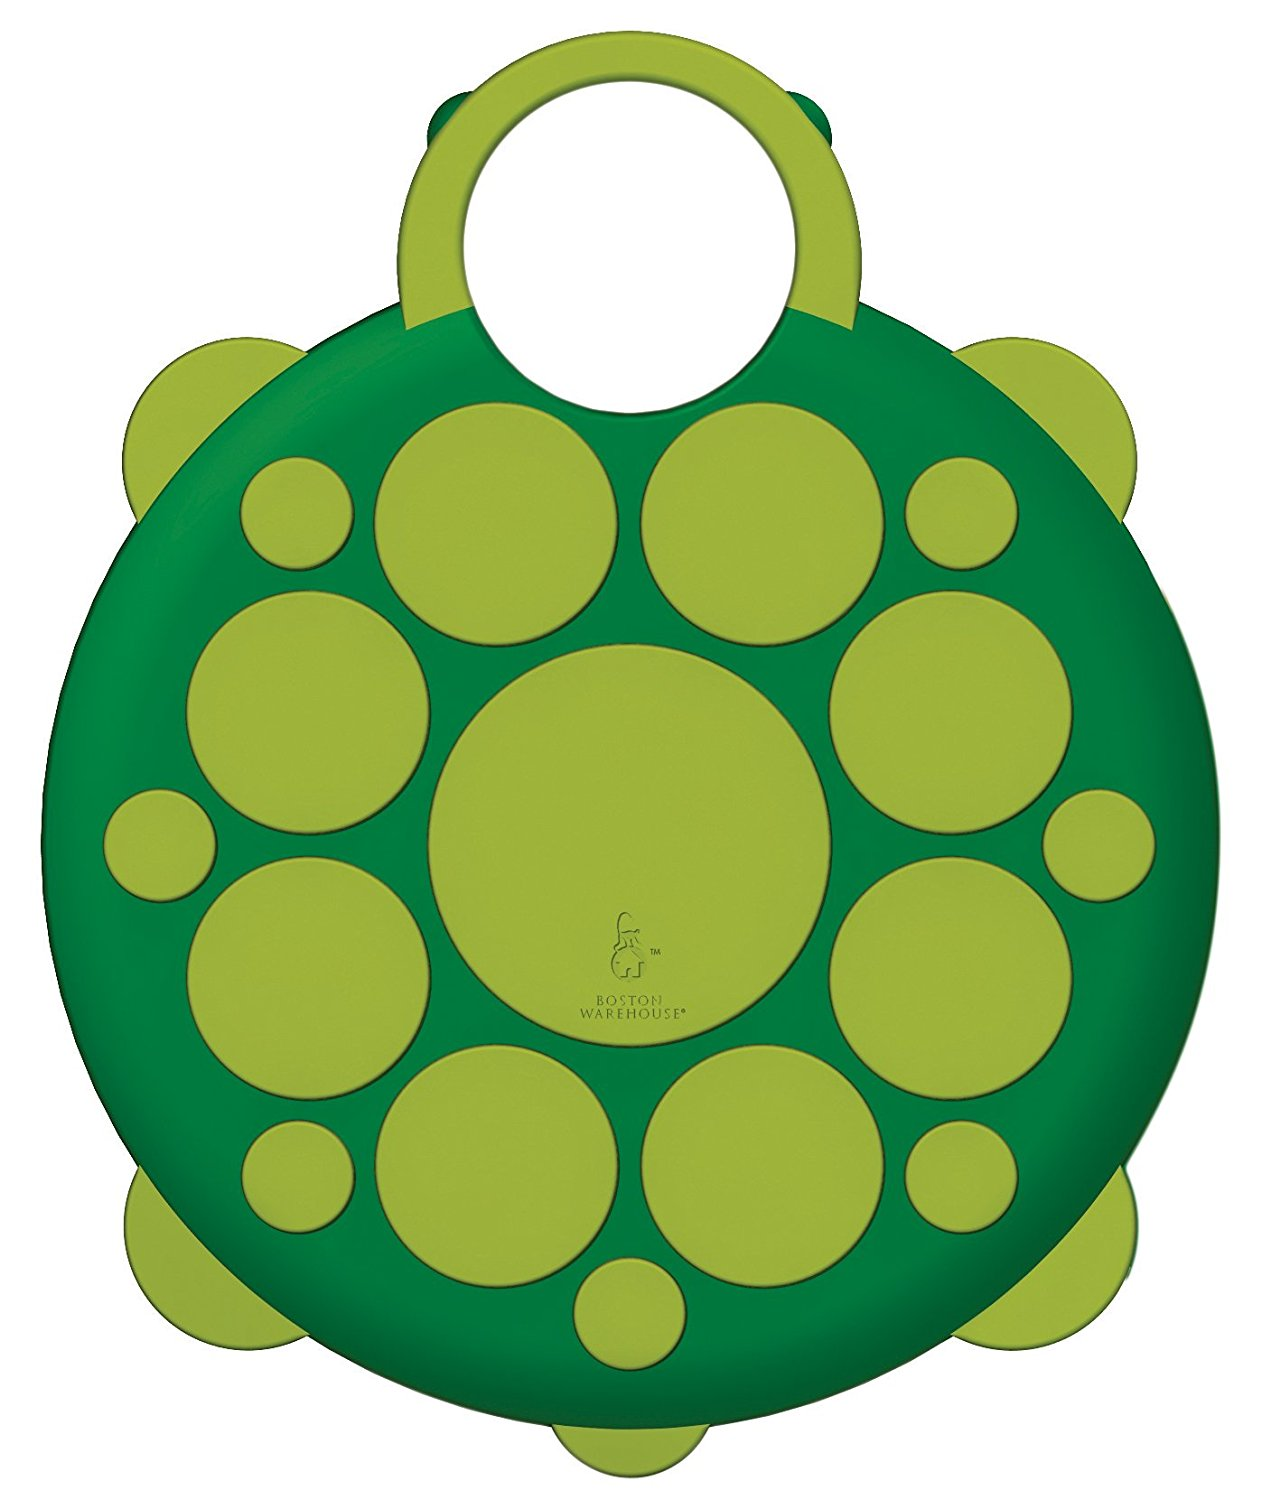 Animal Shaped 2-in-1 Cutting Board & Trivet Combo - Turtle